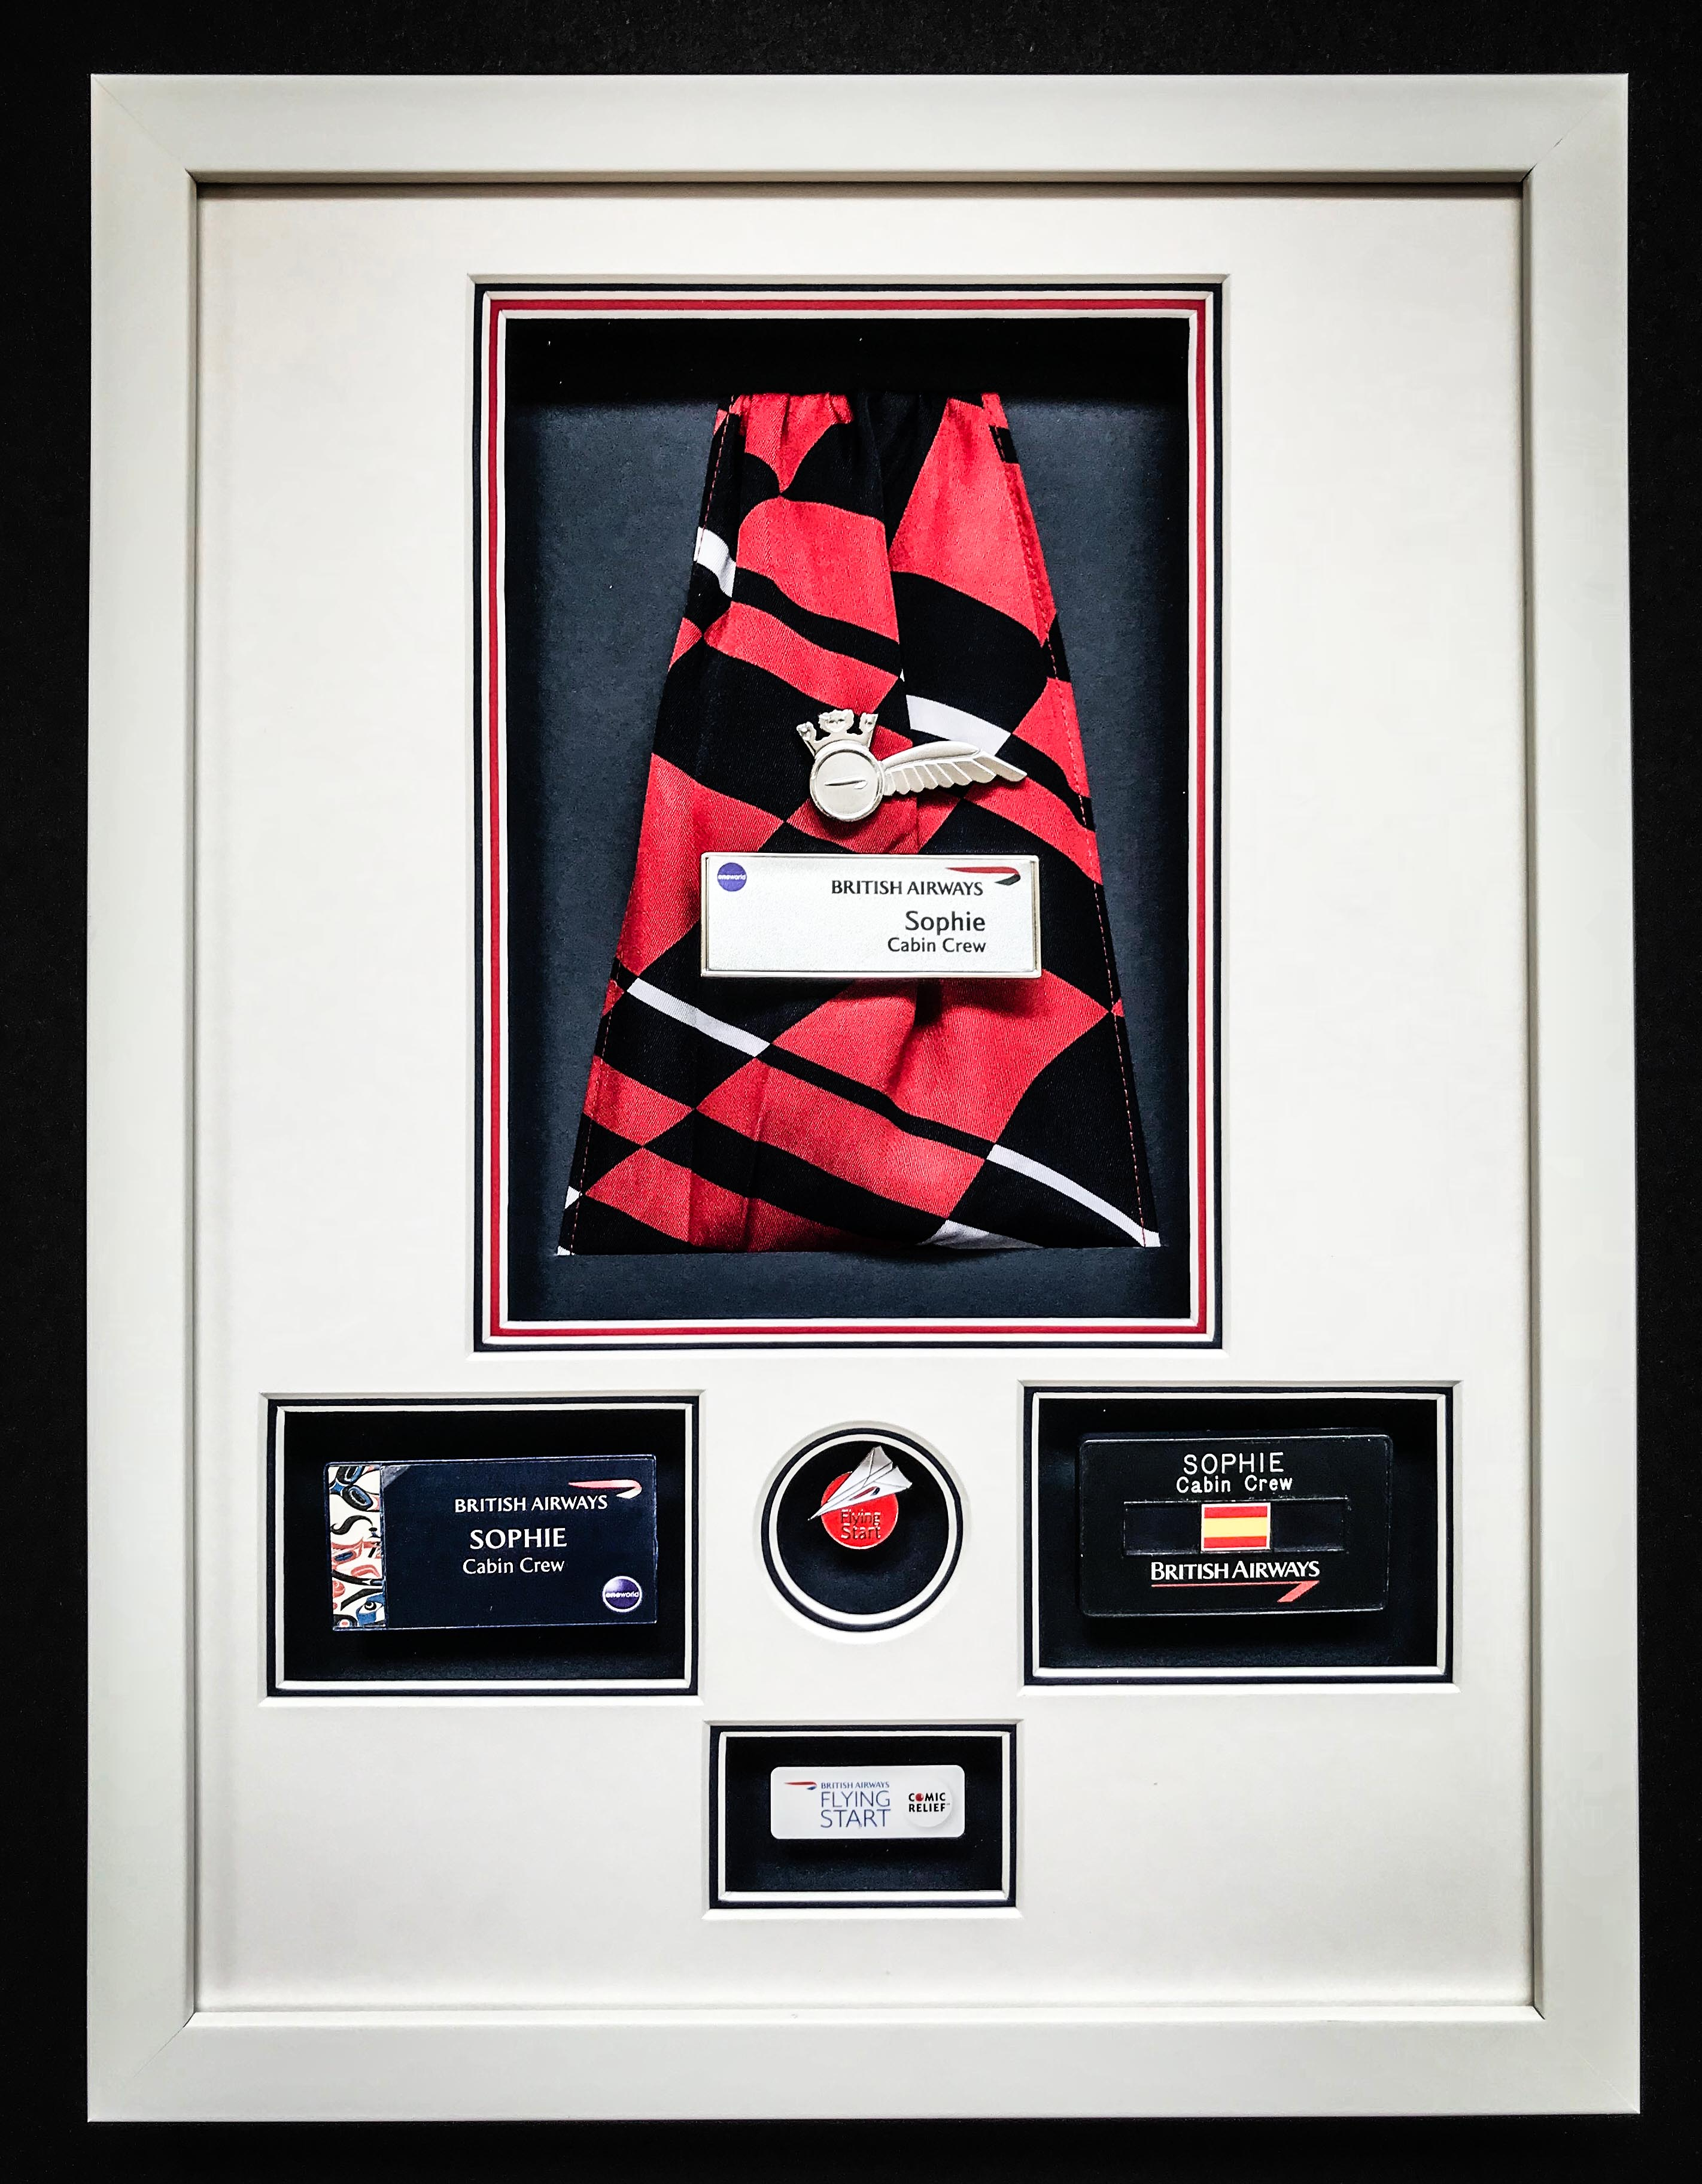 BA Memorabilia | Framed by Jules Sainter of Lovingly Framed